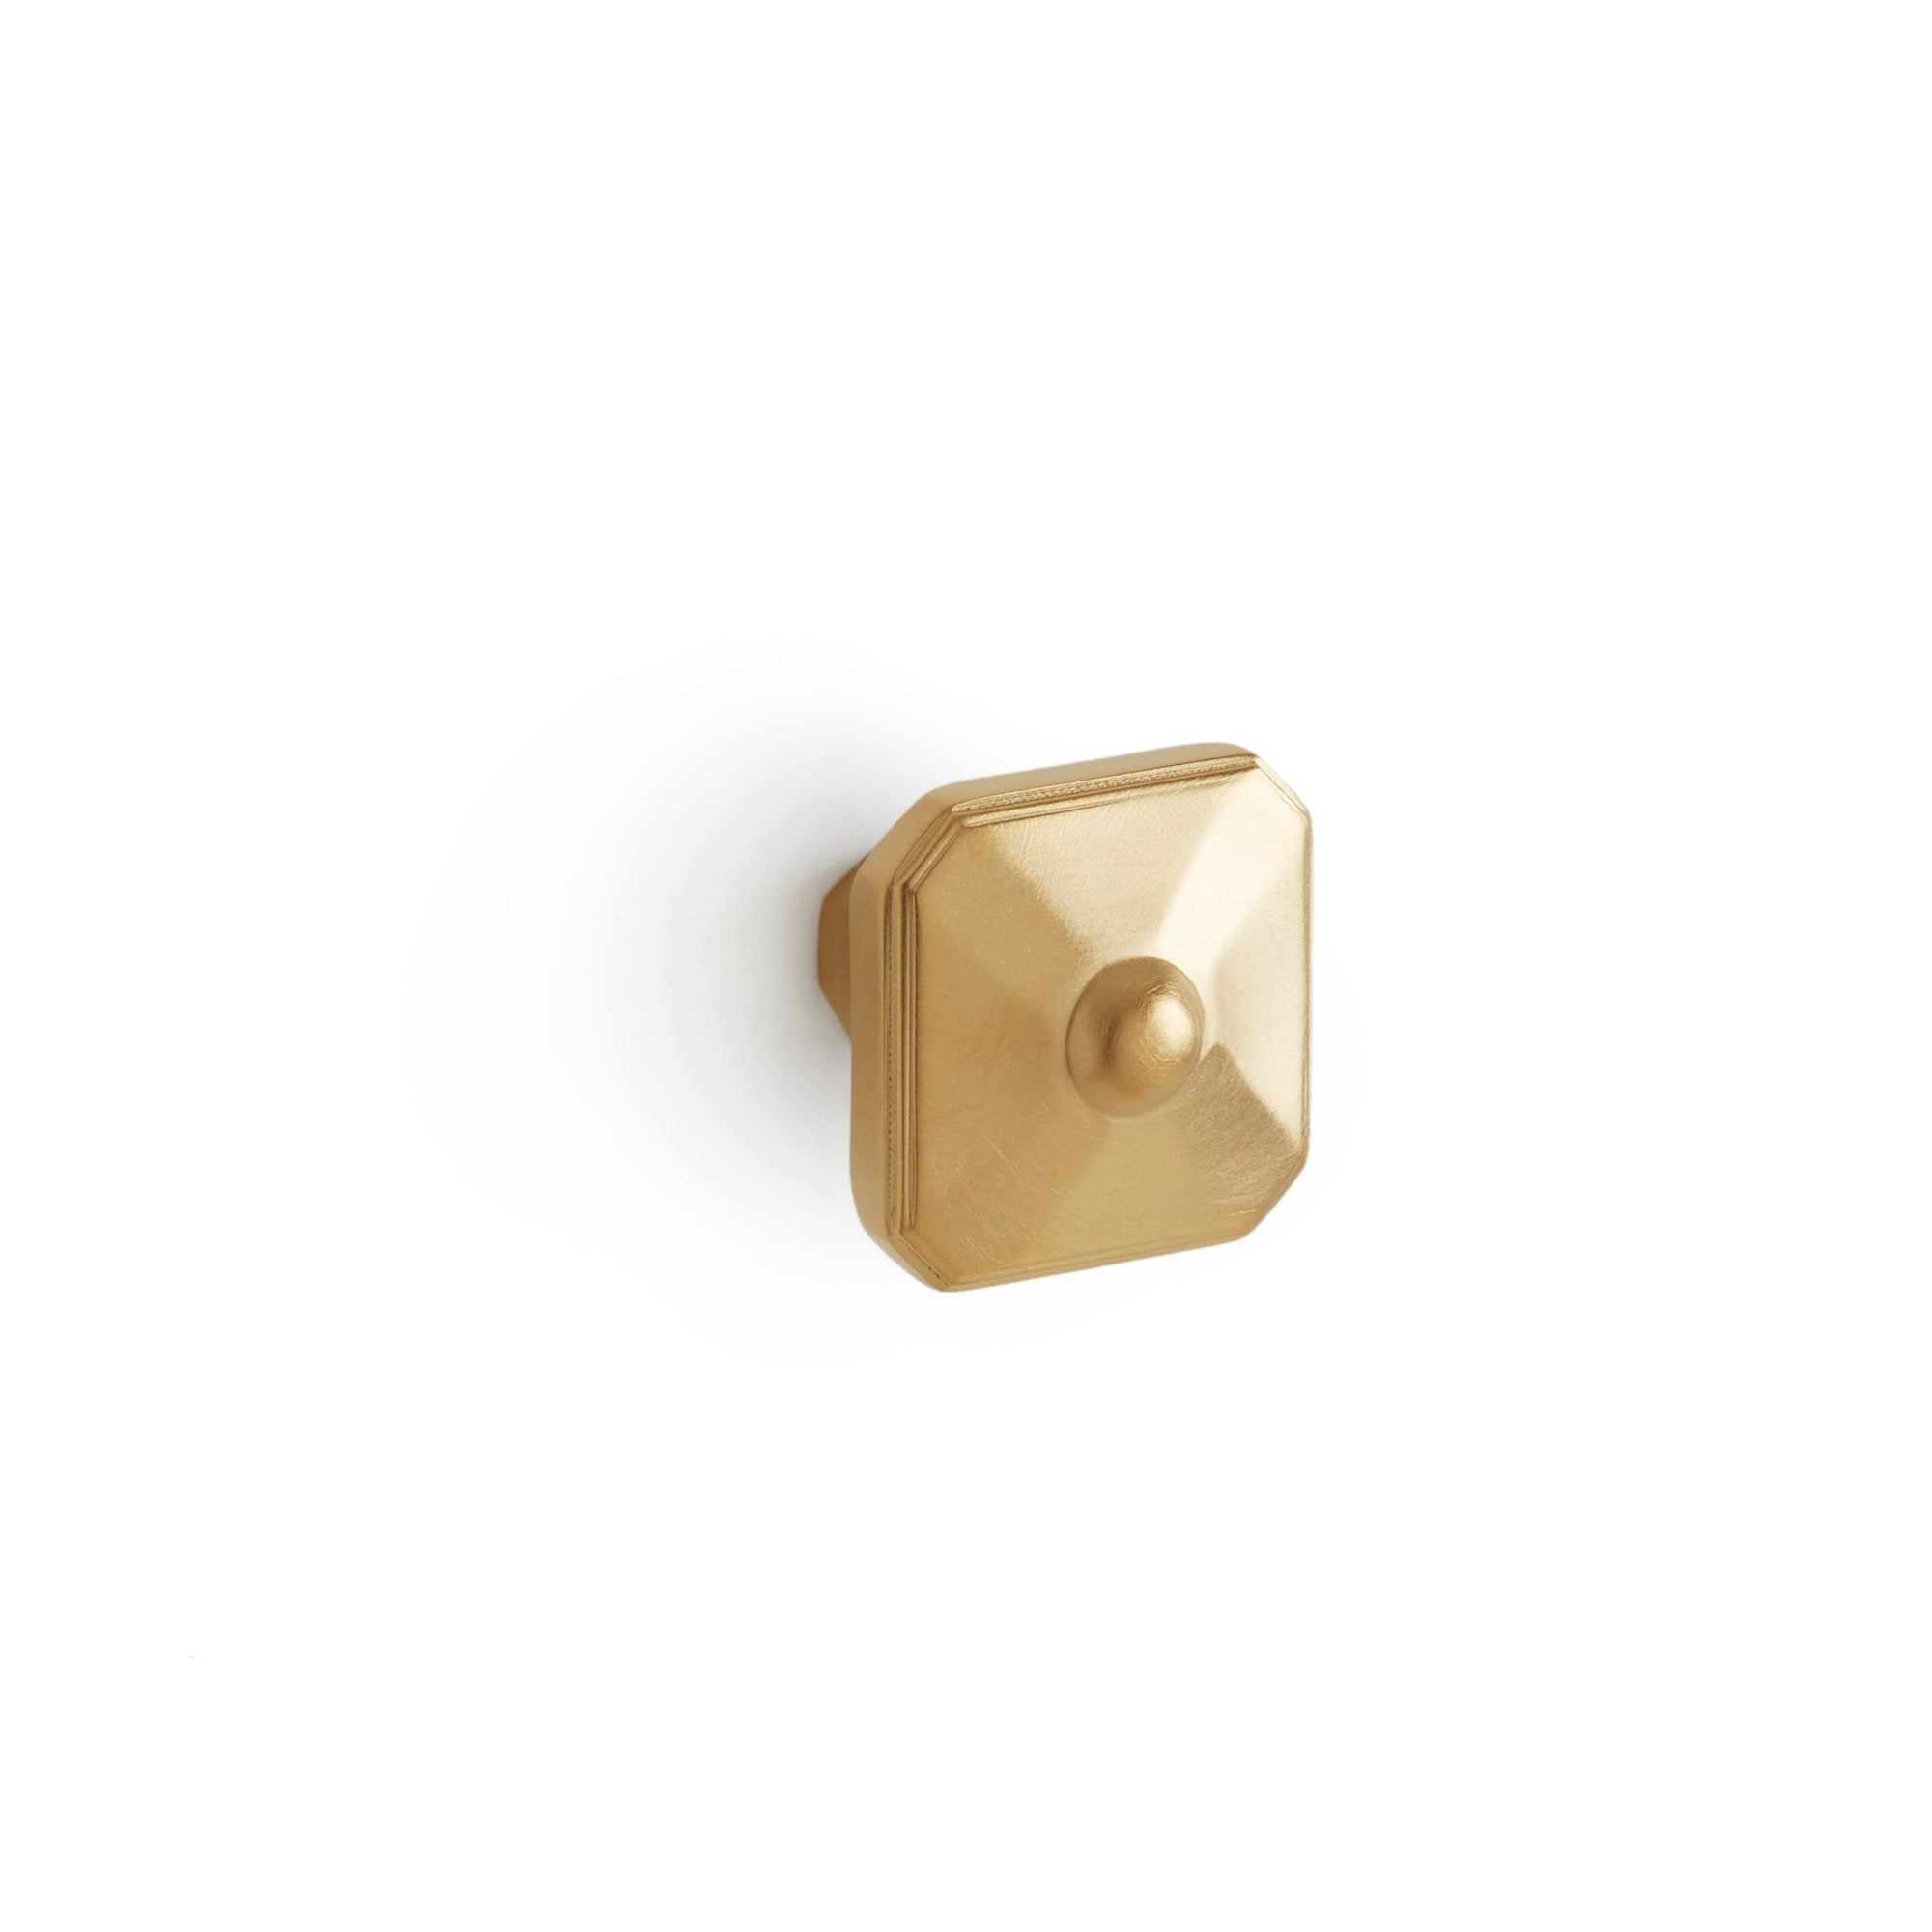 0009-11/4-GP Sherle Wagner International Harrison II Cabinet & Drawer Knob in Gold Plate metal finish